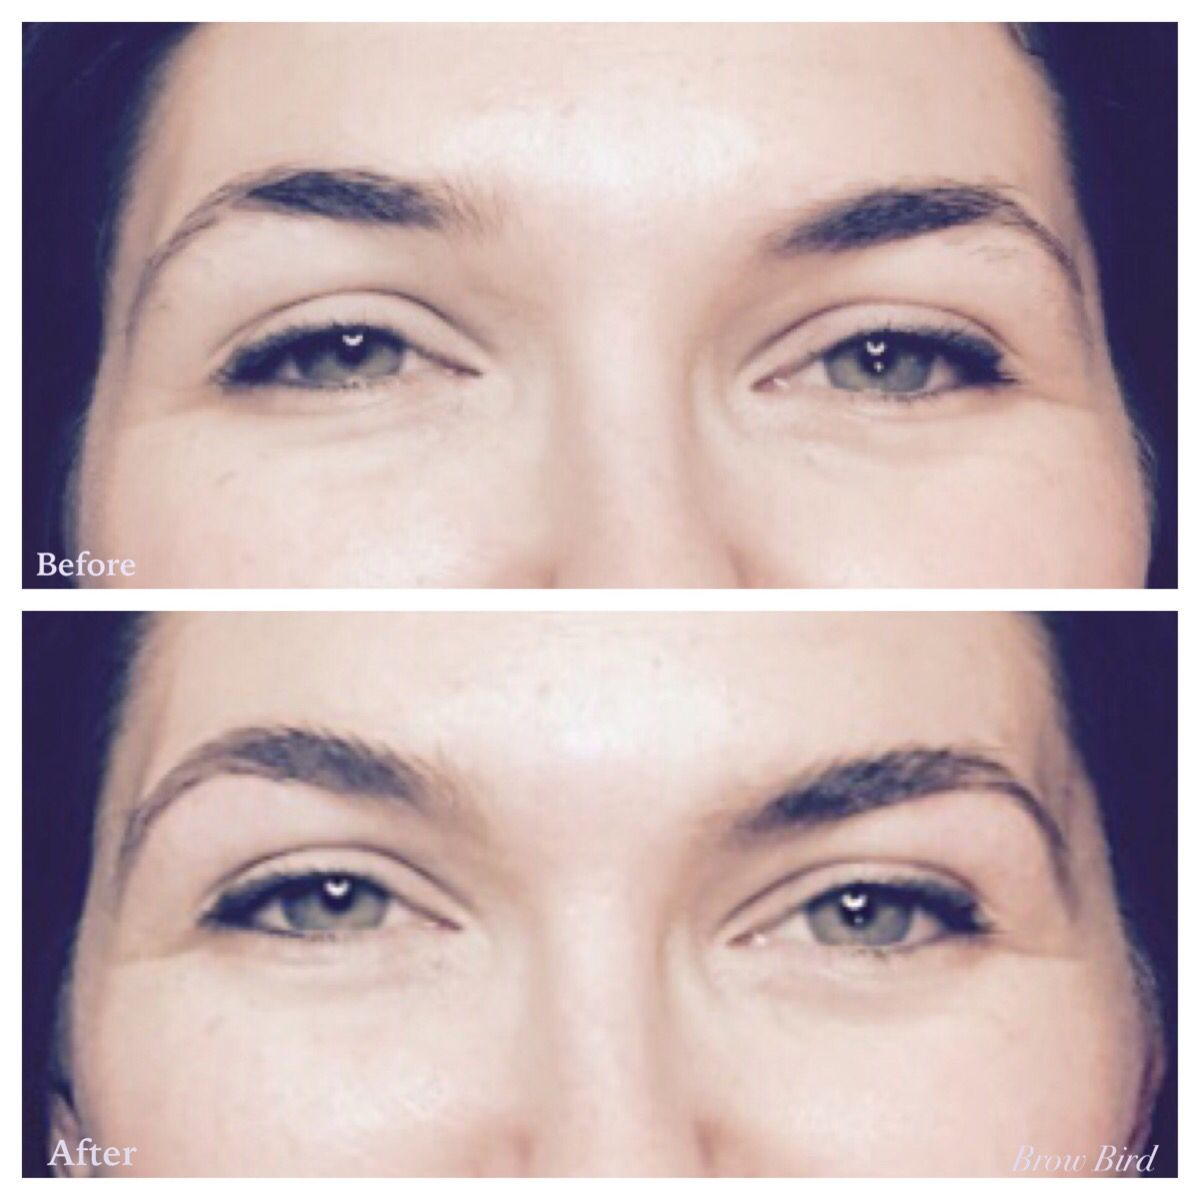 Every Hair Makes A Difference Professional Shaping Can Make All The Jacquelle Eyebrow Scissors Brows By